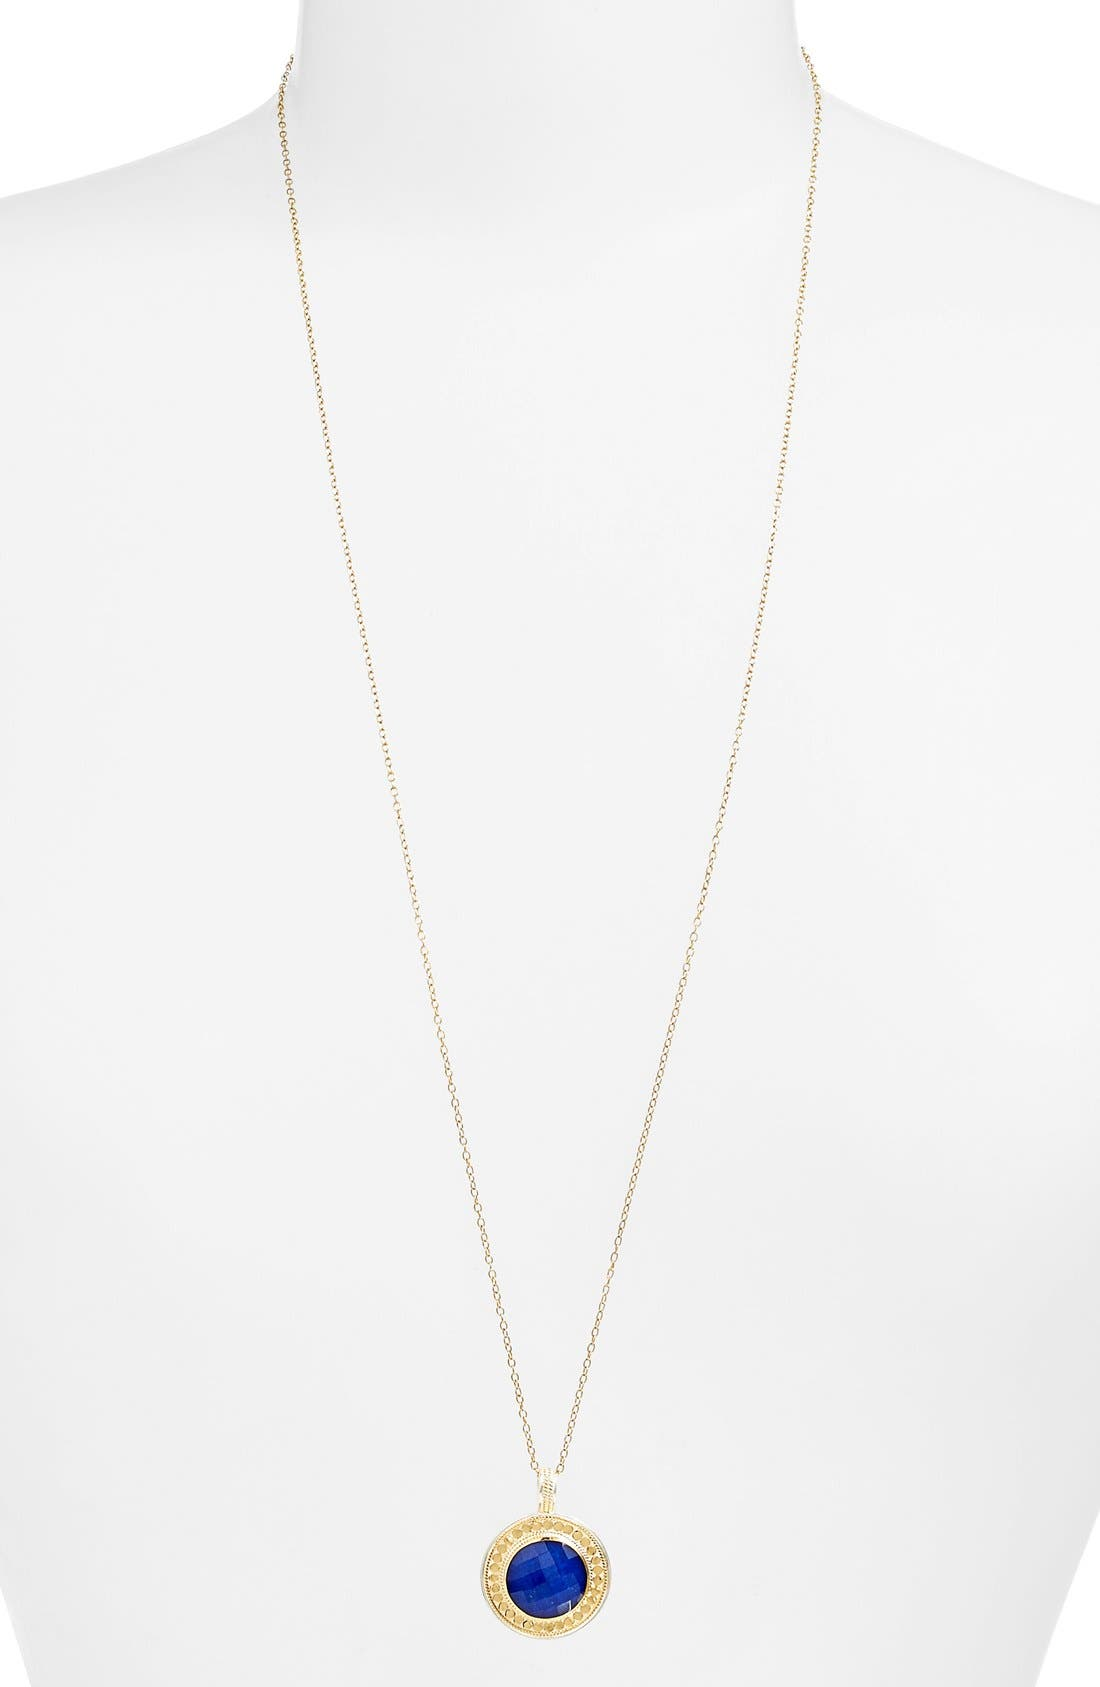 Alternate Image 1 Selected - Anna Beck 'Gili' Green Onyx Pendant Necklace (Nordstrom Exclusive)